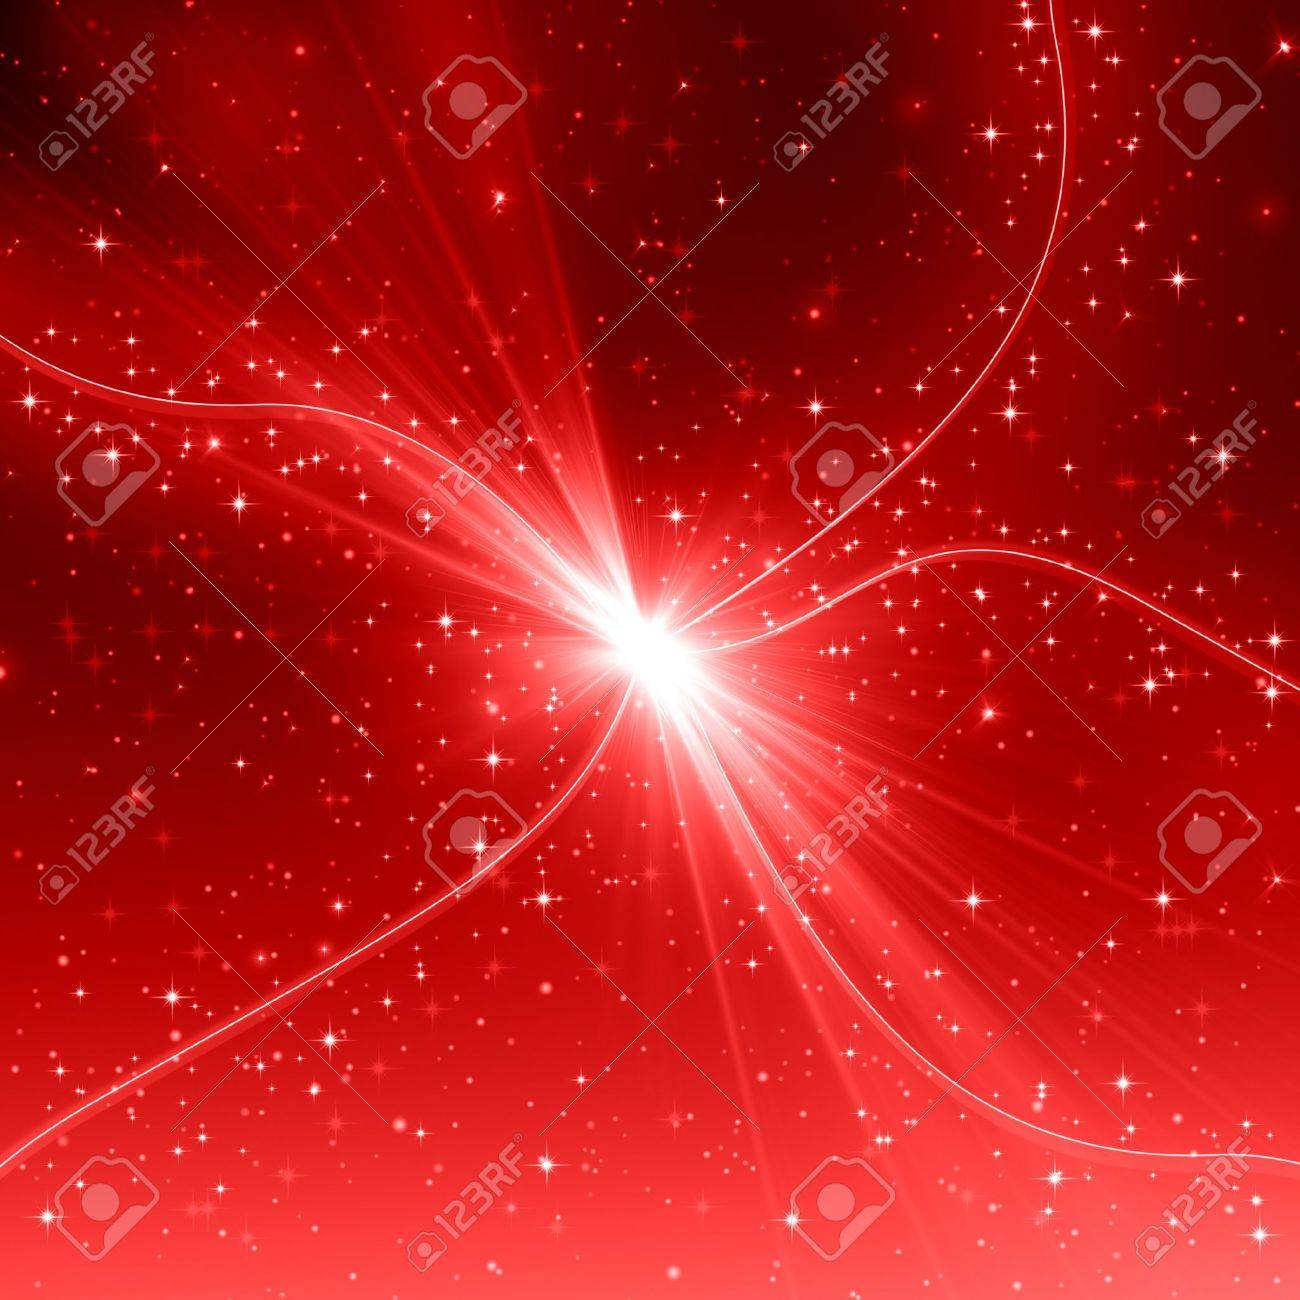 Red abstract background Stock Photo - 21493971